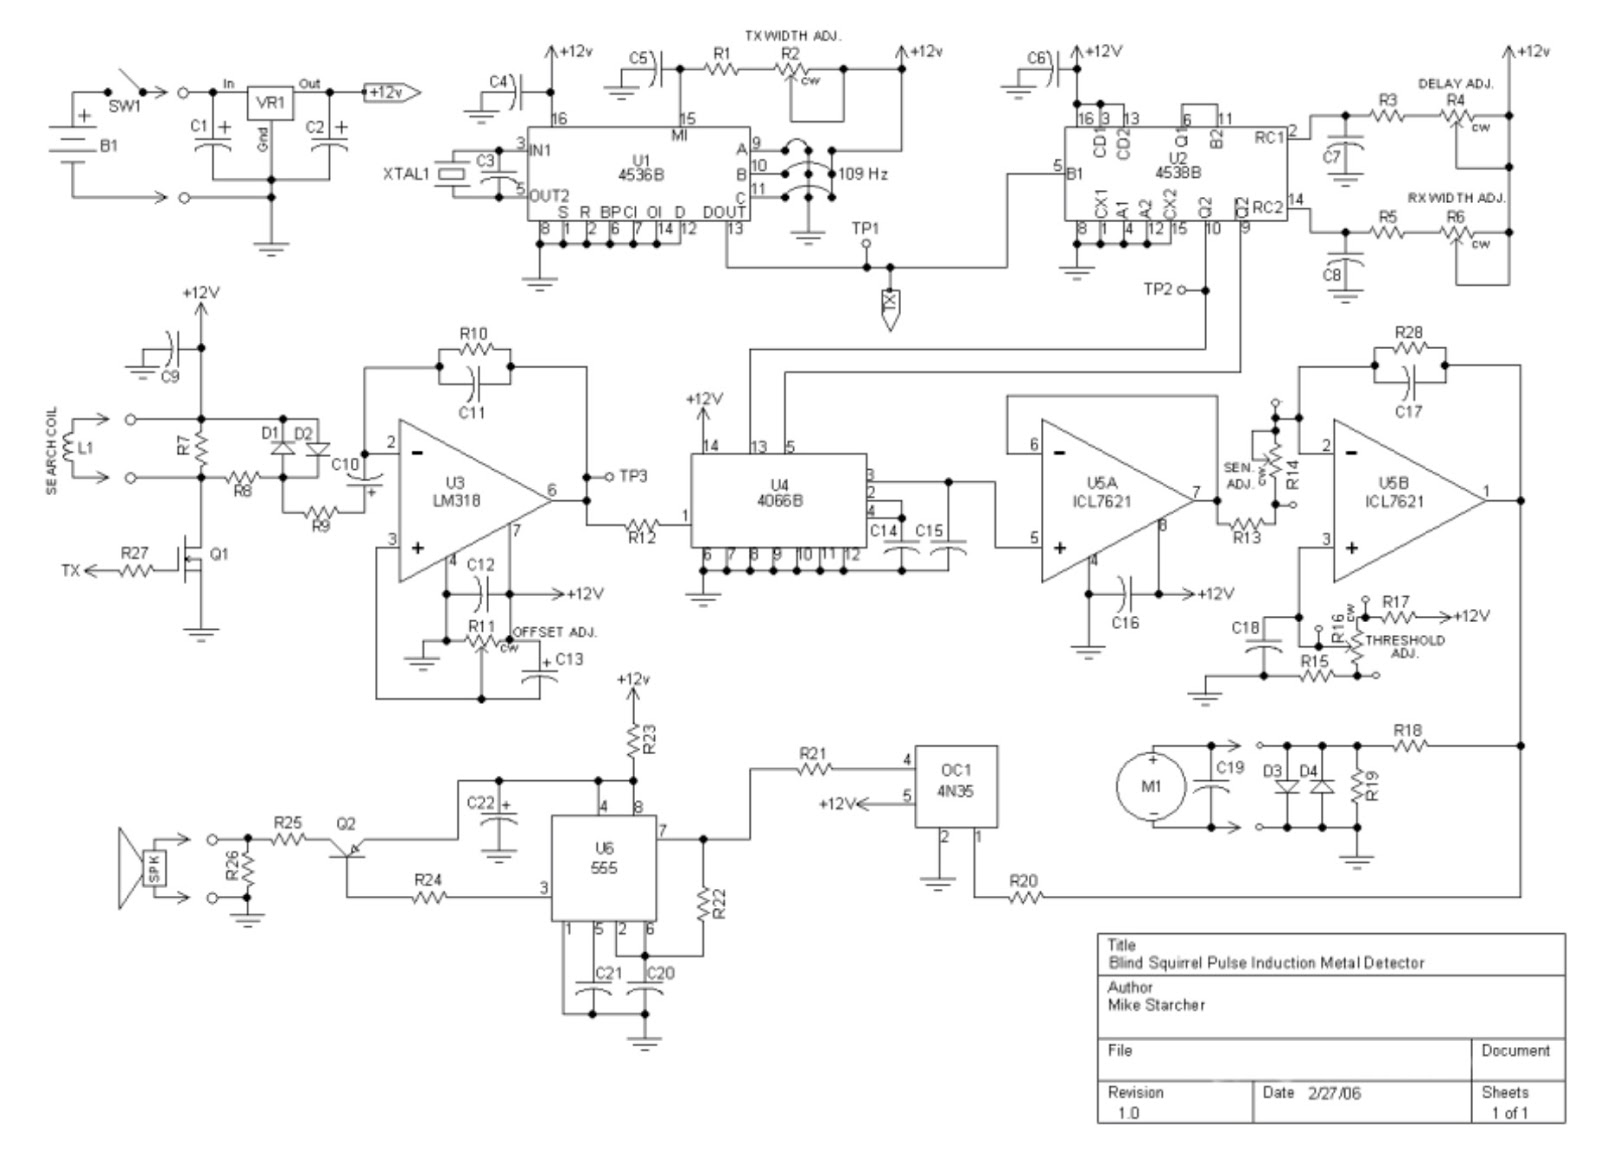 The Blind Squirrel Pulse Induction Metal Detector A Simple Bfo Pi Schematic Diagram